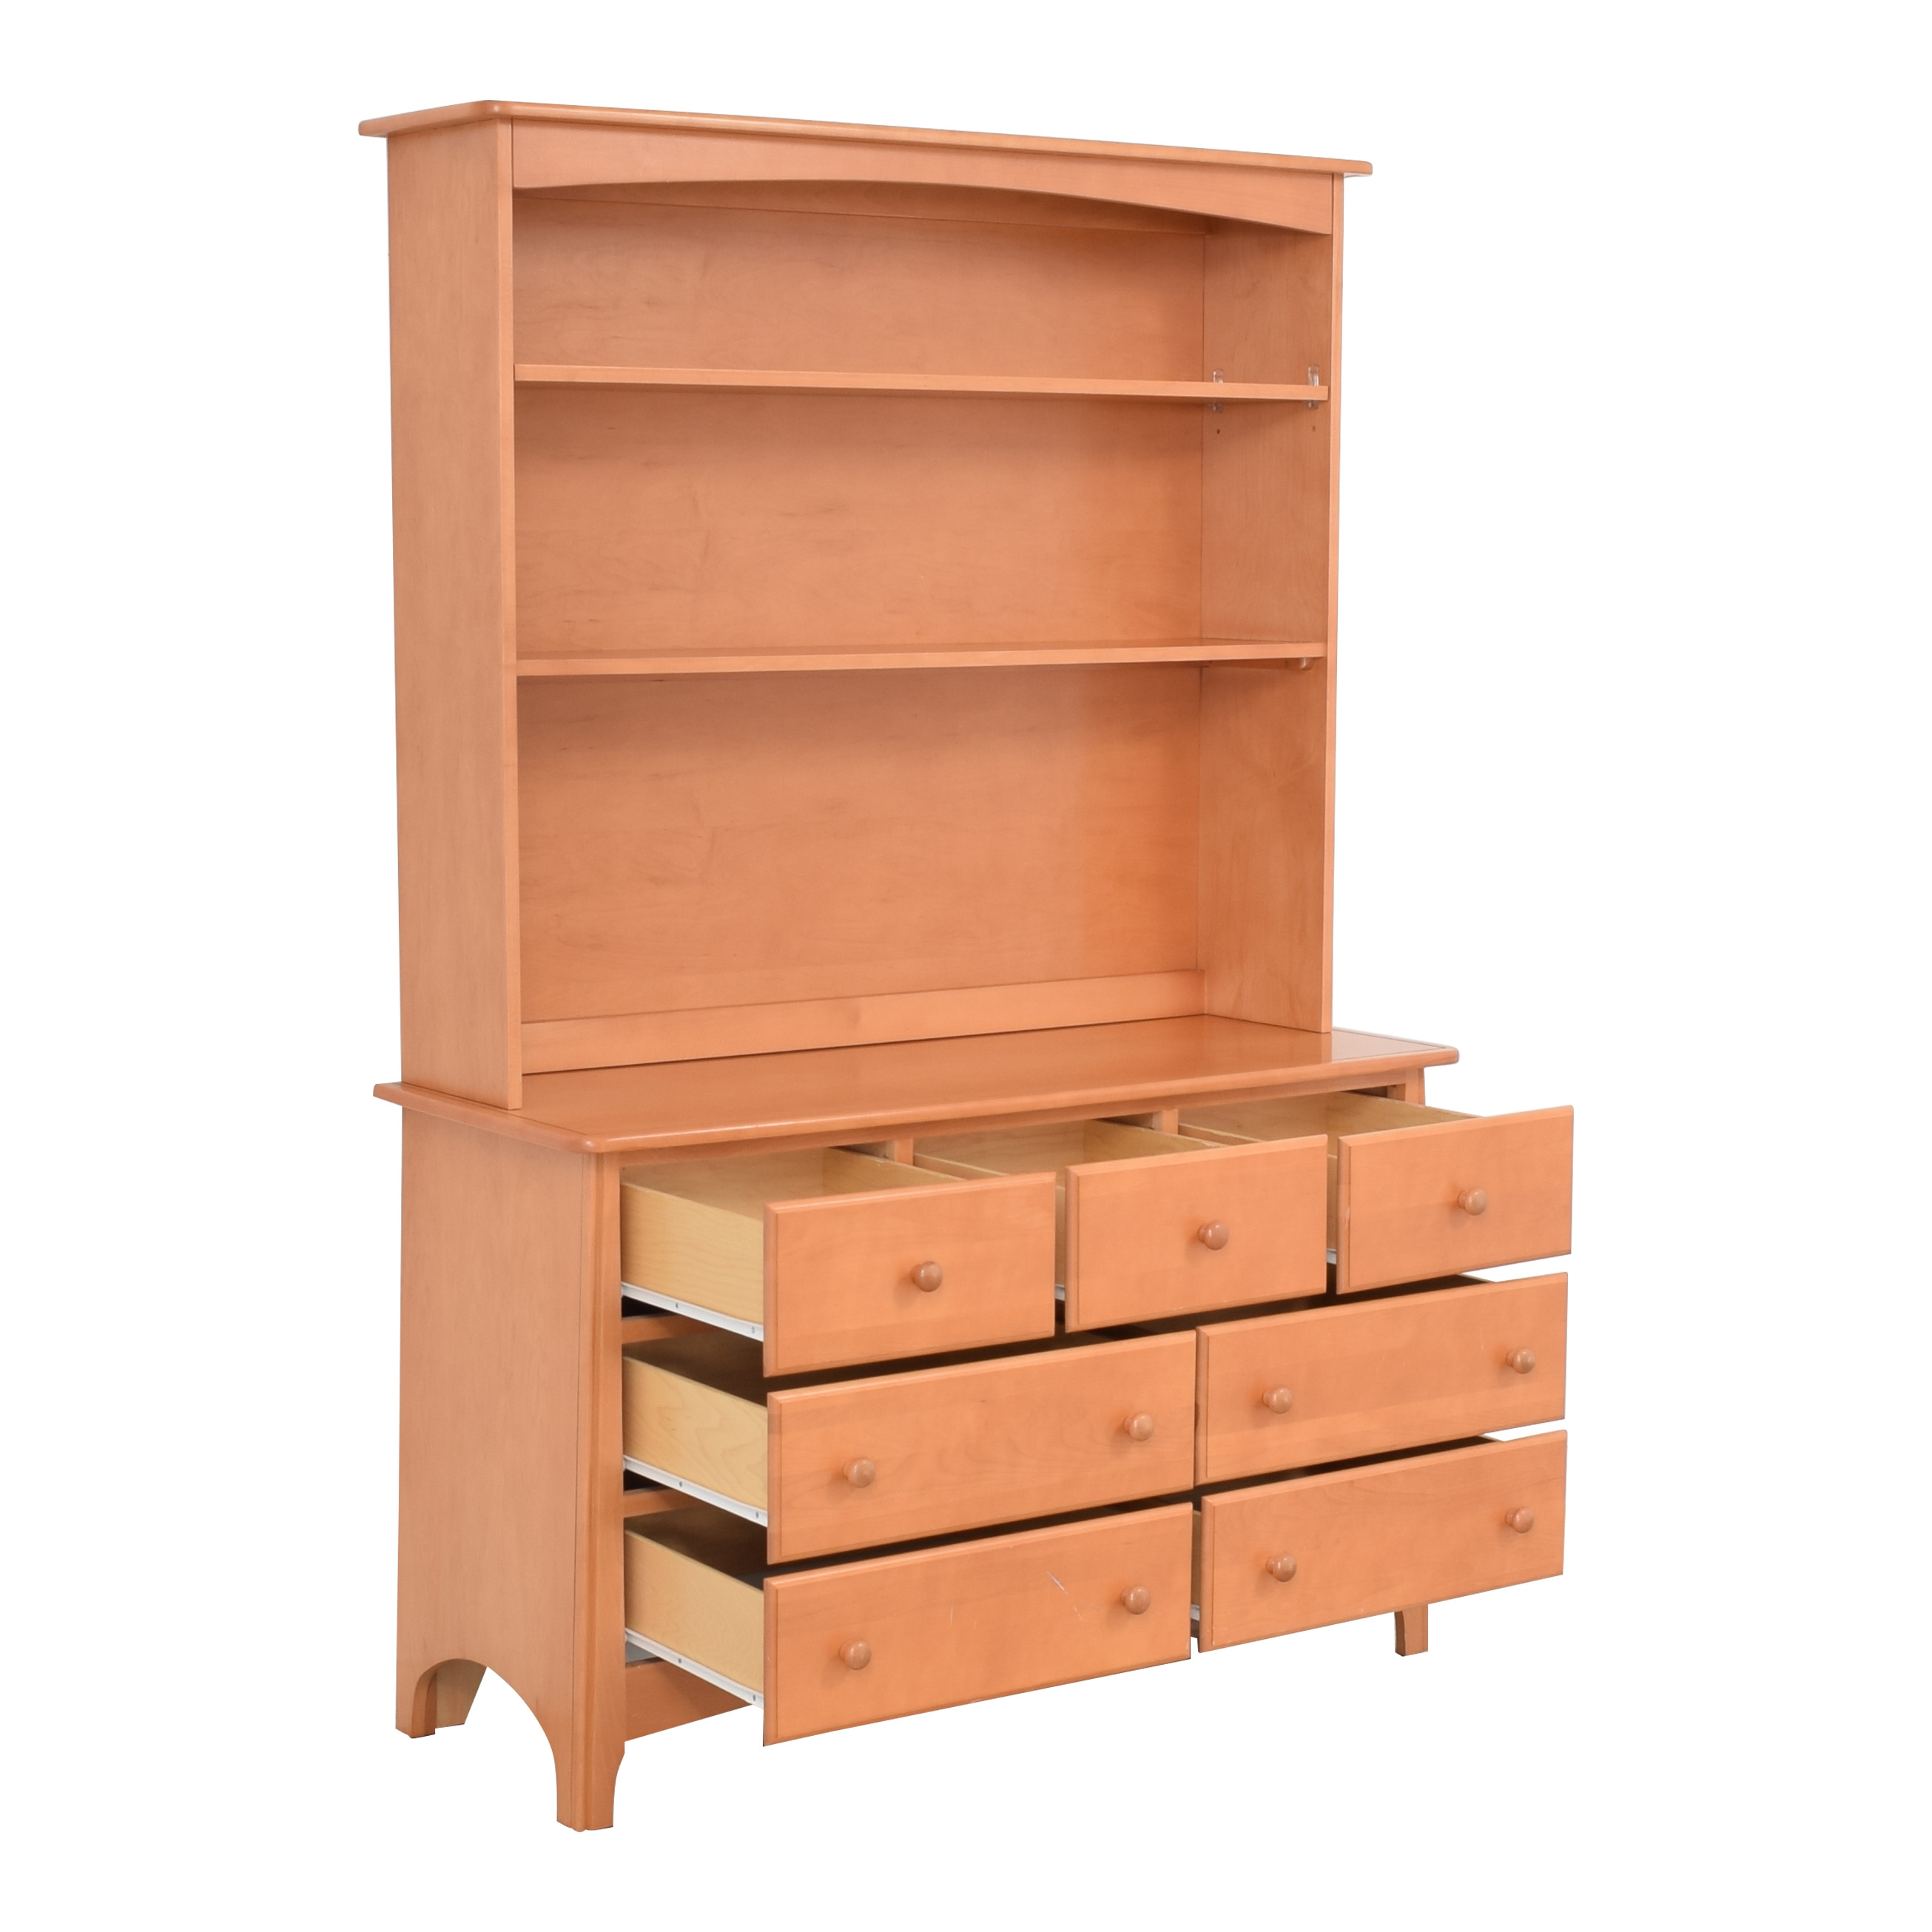 Ragazzi Ragazzi Mission Style Natural Maple Dresser with Hutch pa